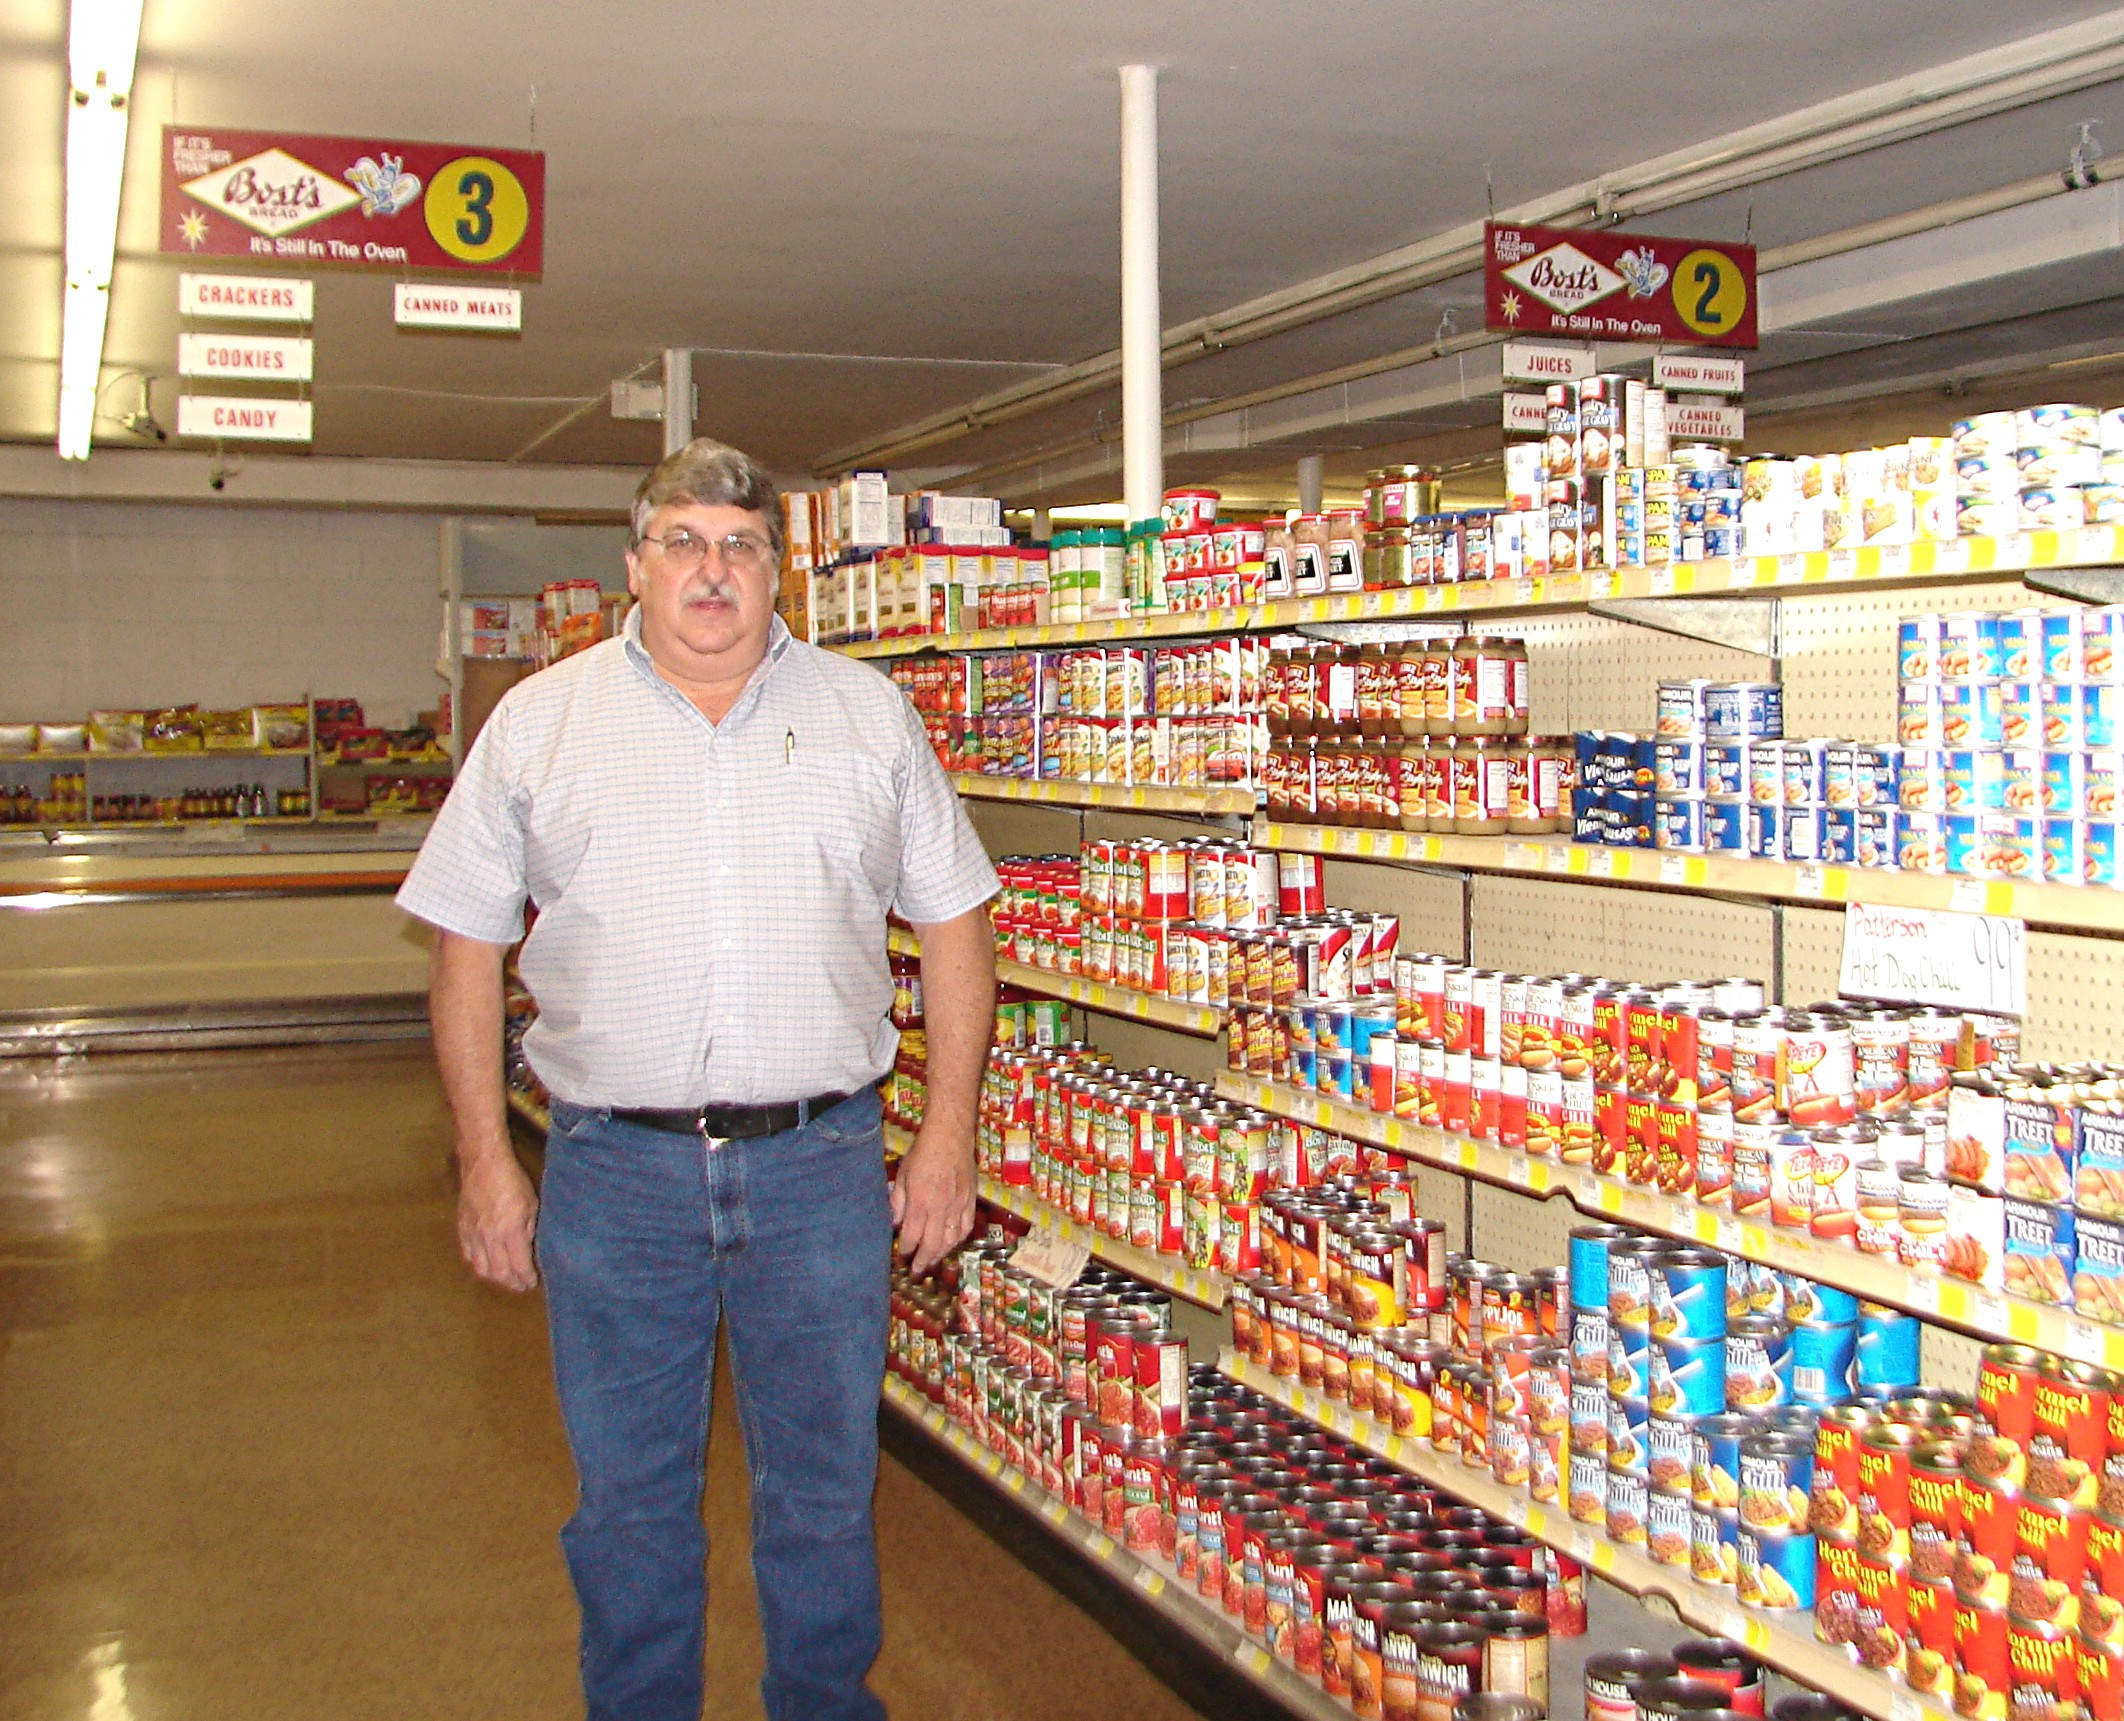 Bill Nichols in the aisle of John's Market today, under a vintage Bost Bread aisle sign